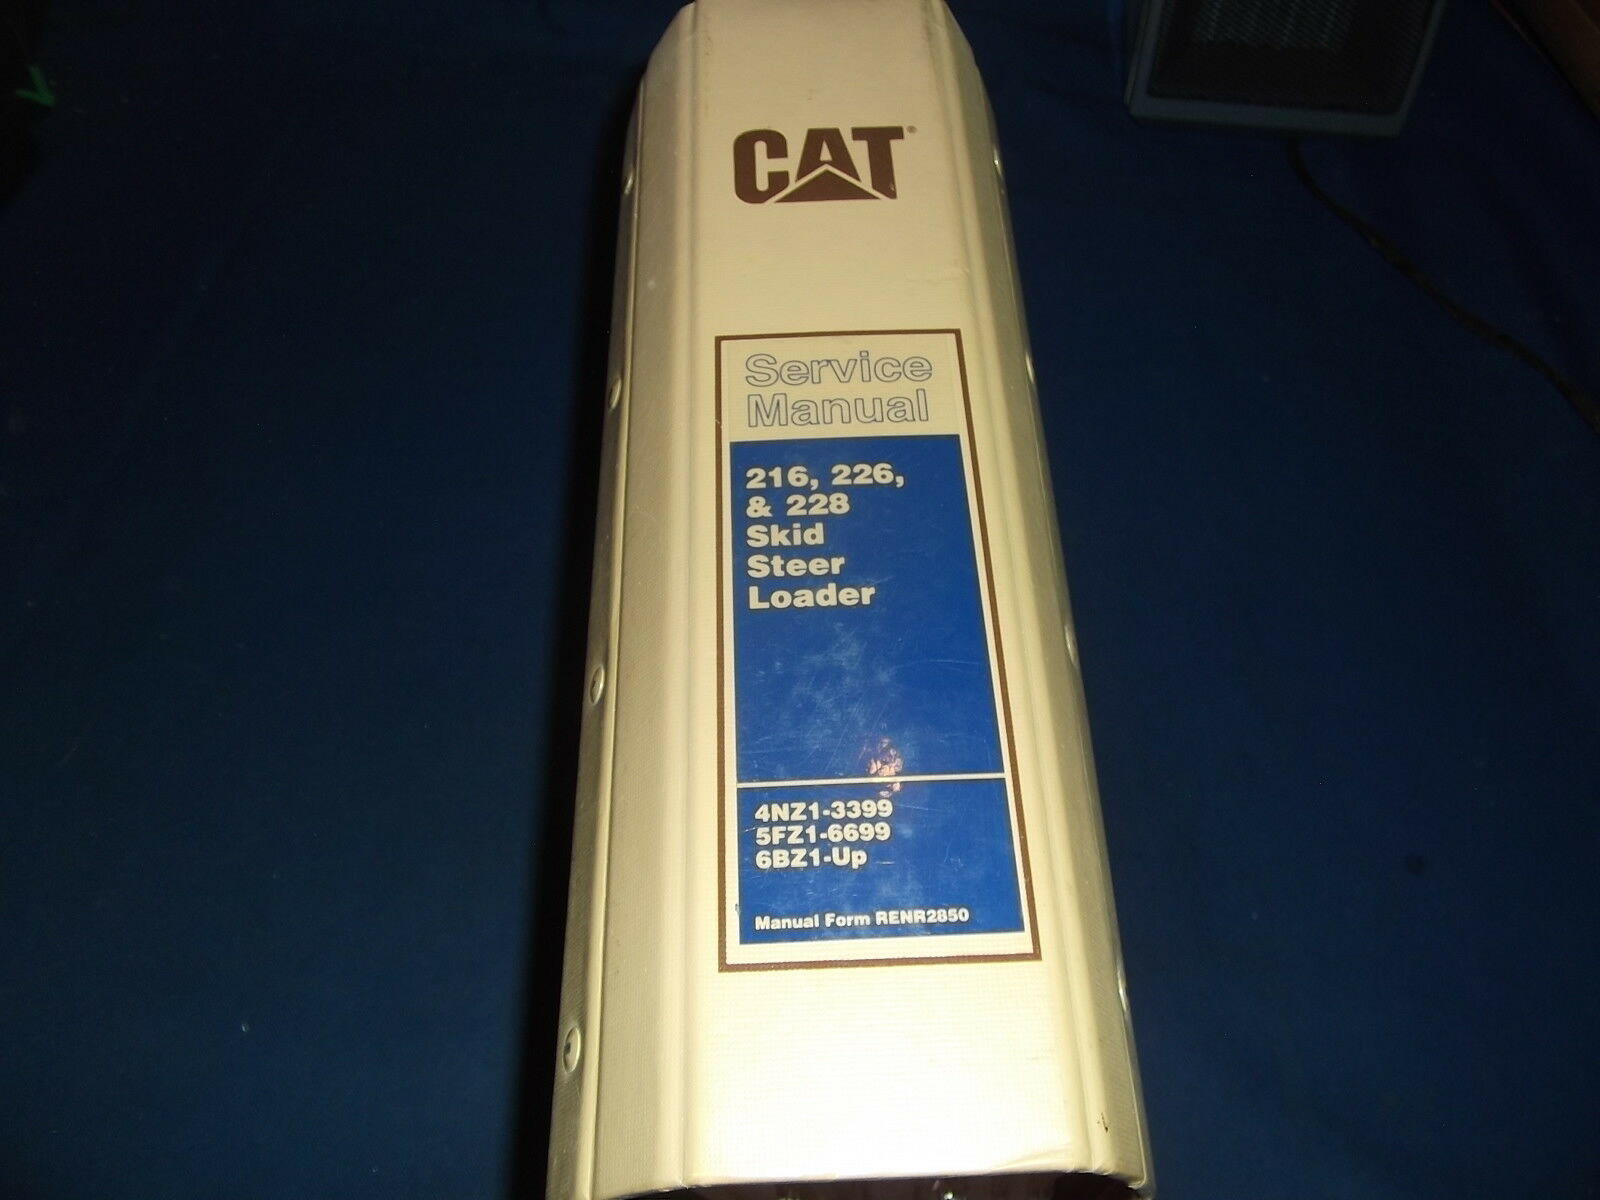 Cat 226 Skid Ster Service Manual